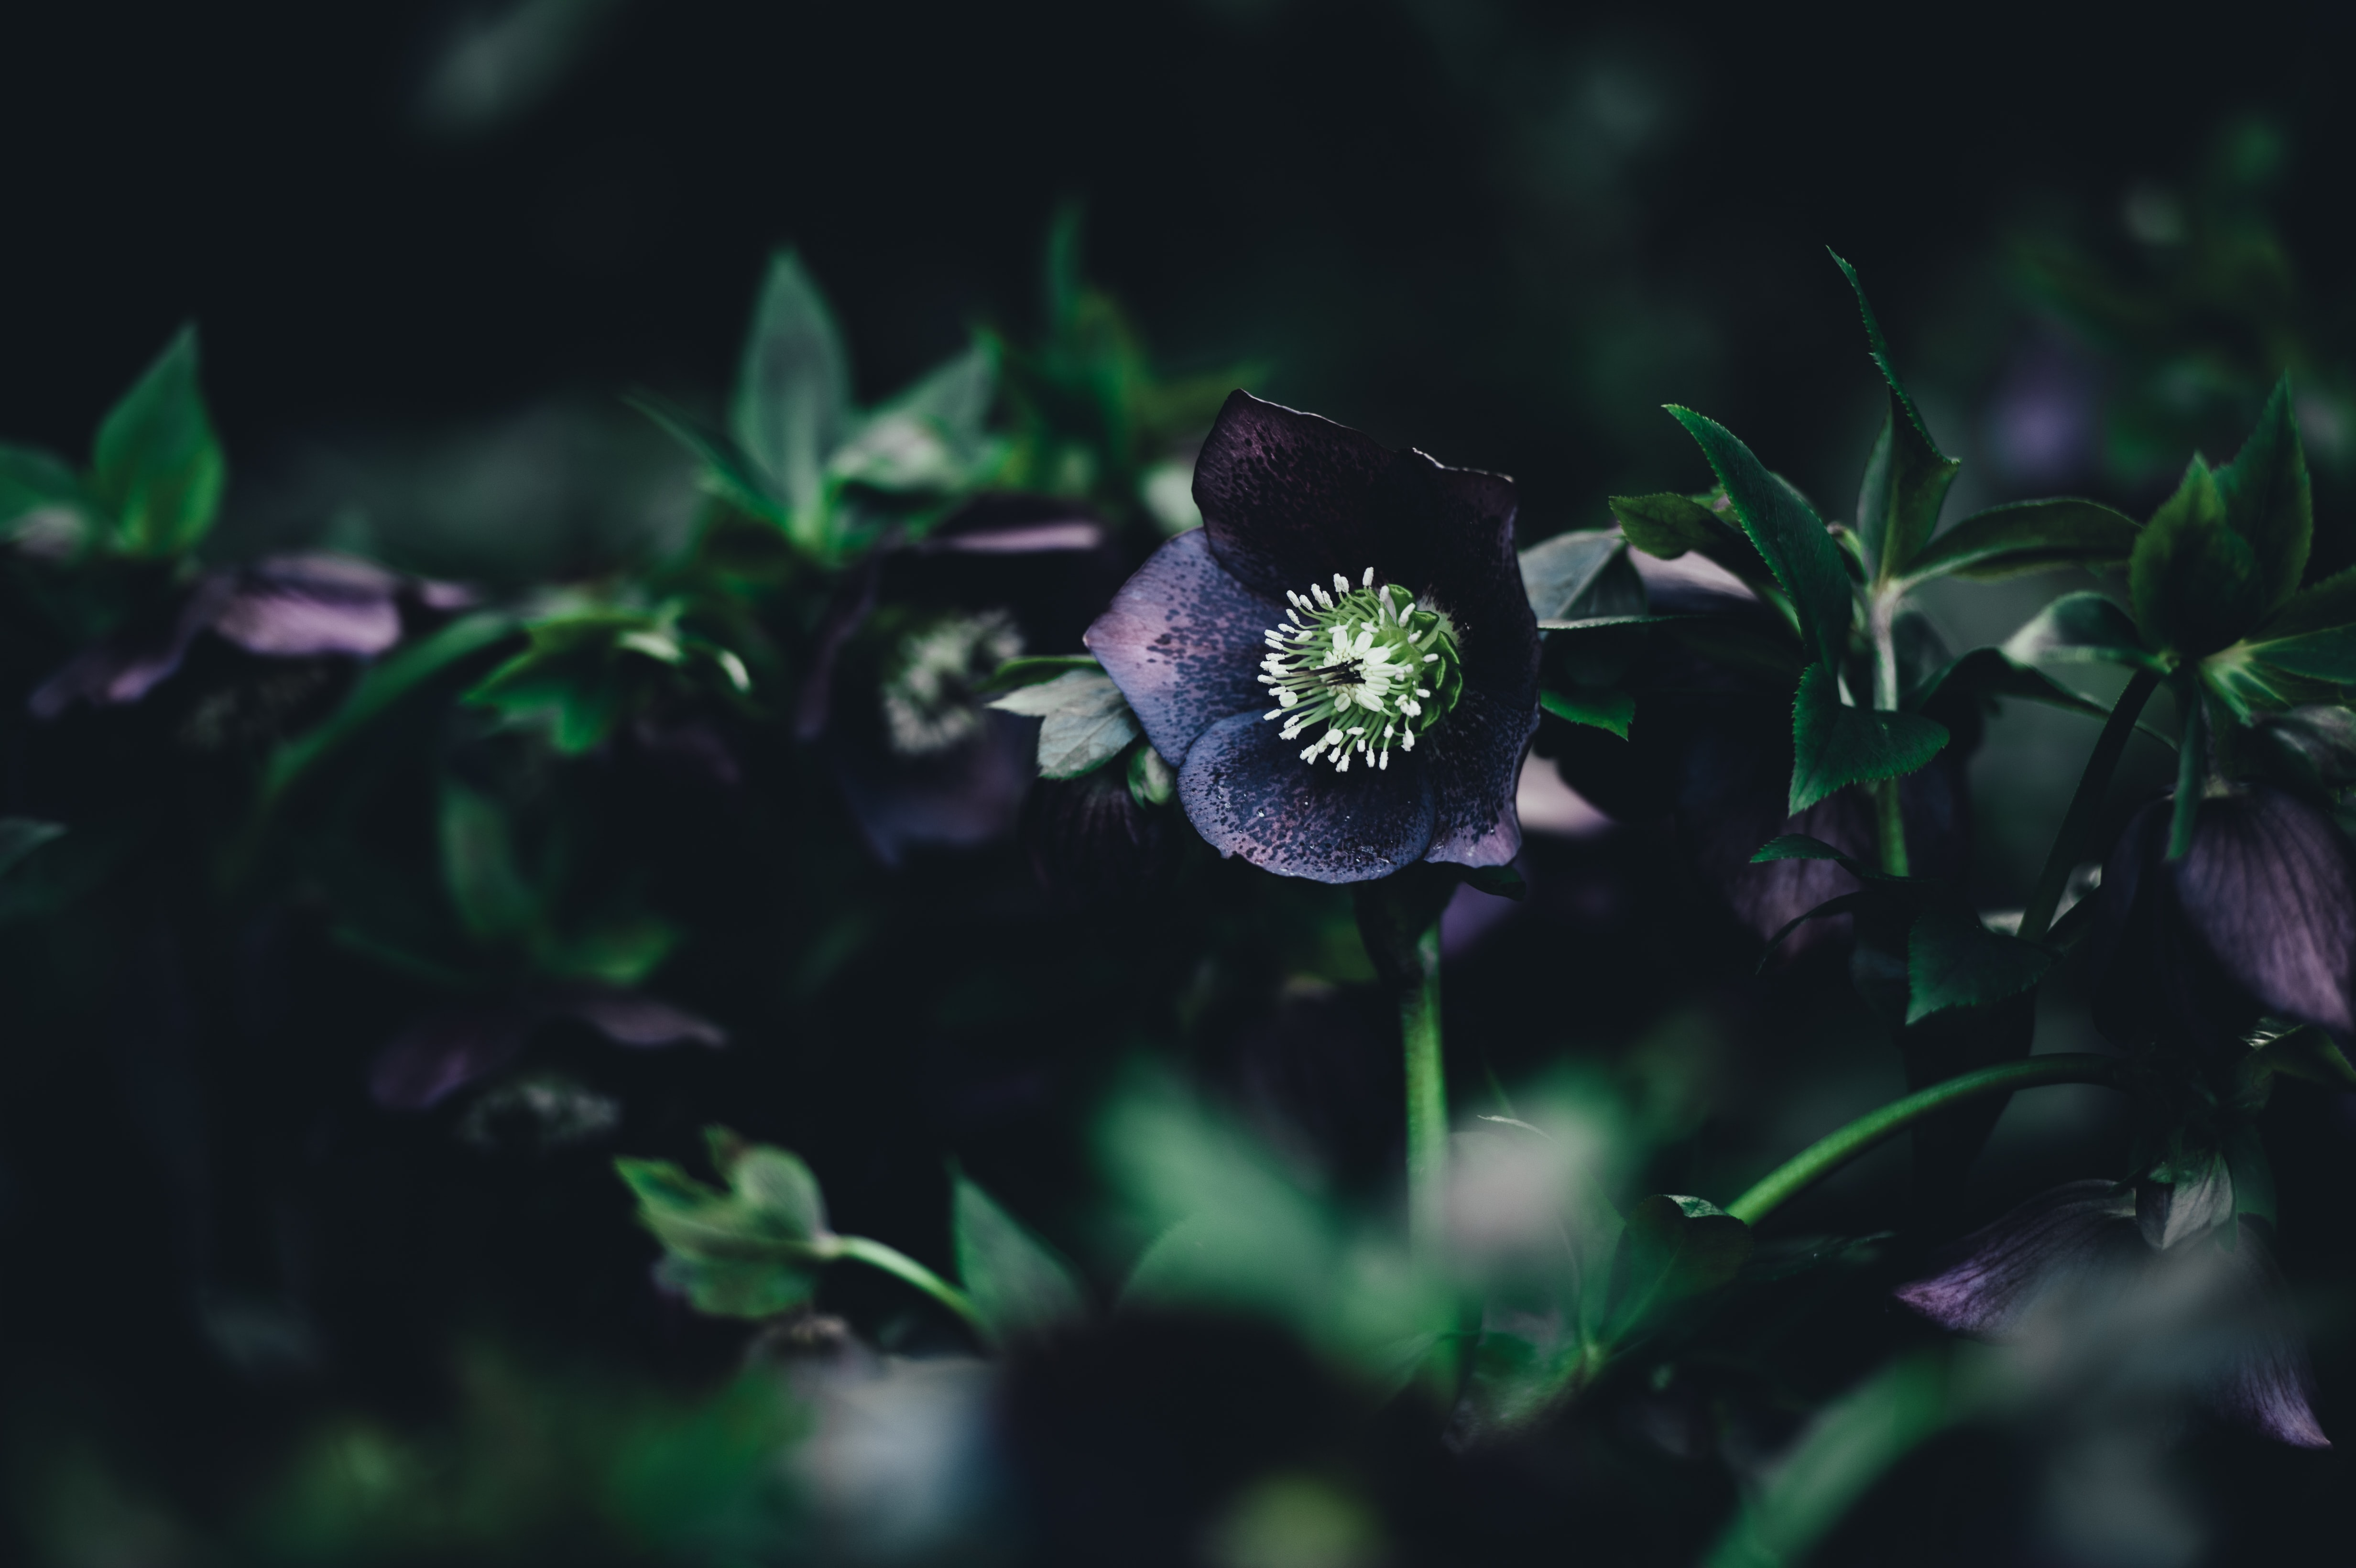 shallow focus photography of purple petaled flower